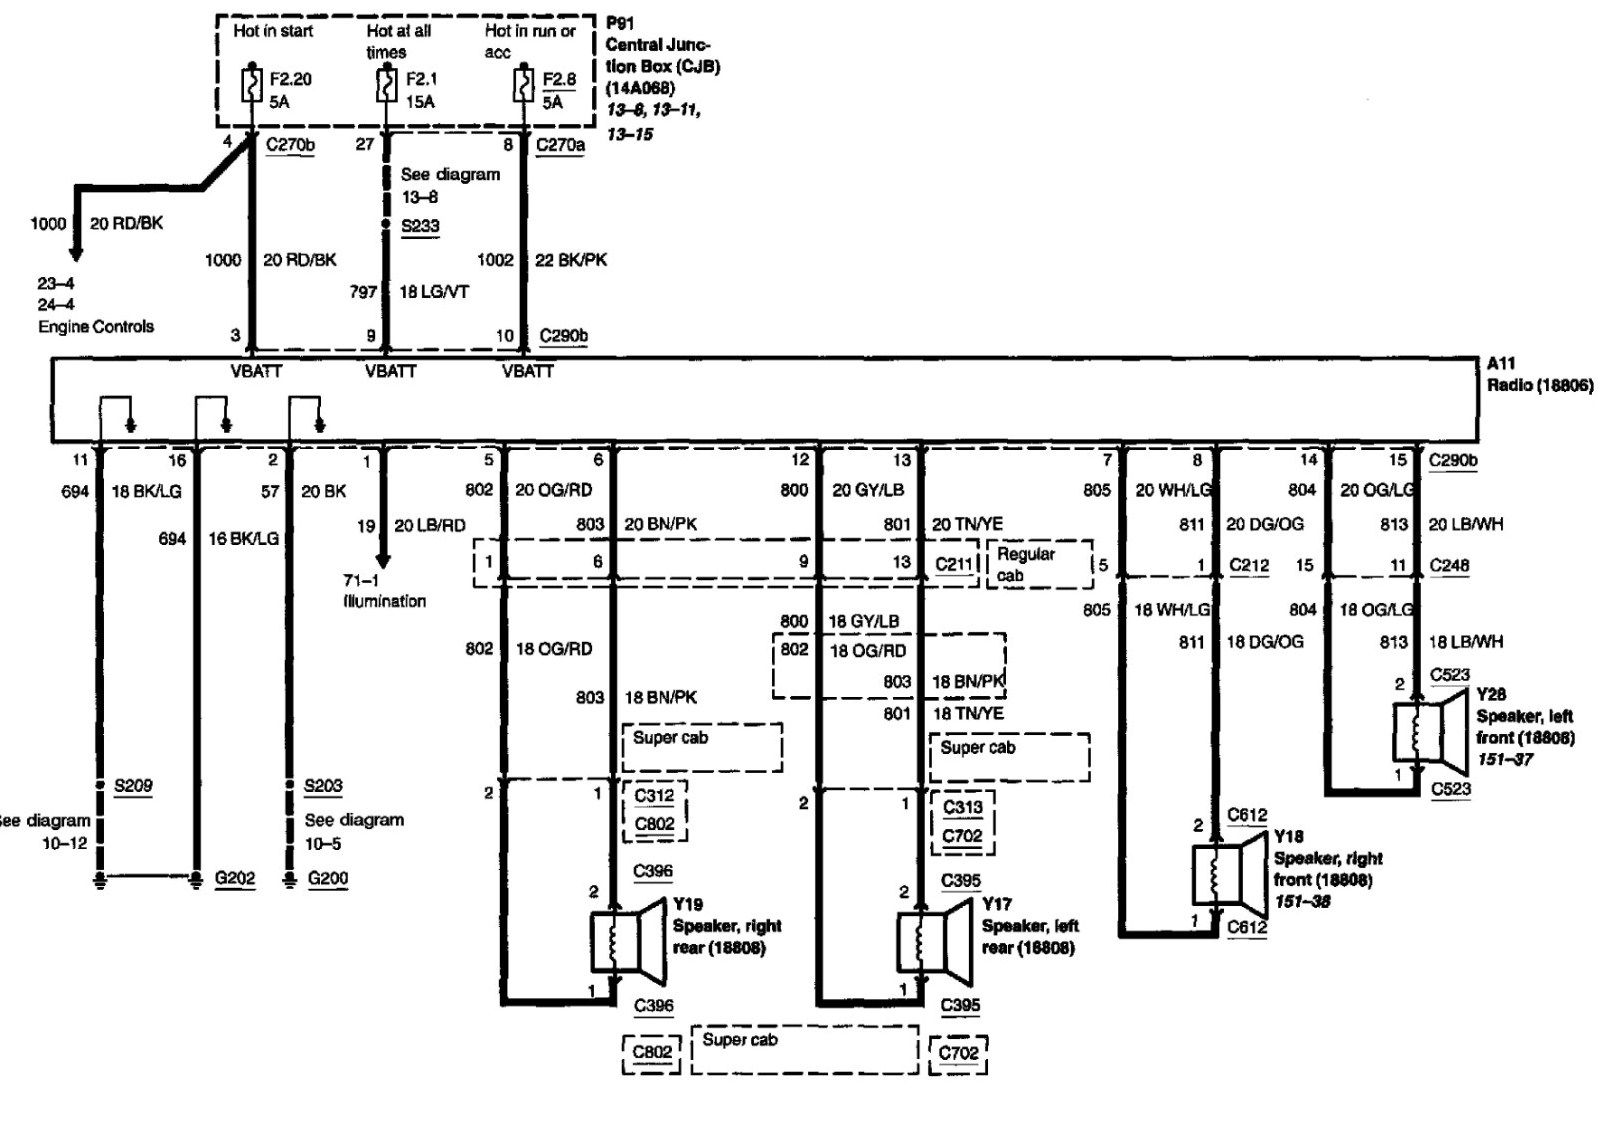 2011 02 26_191136_radio_0001 2015 ford f 150 wiring diagram 2015 chevy silverado wiring diagram 2015 ford f150 trailer wiring diagram at crackthecode.co